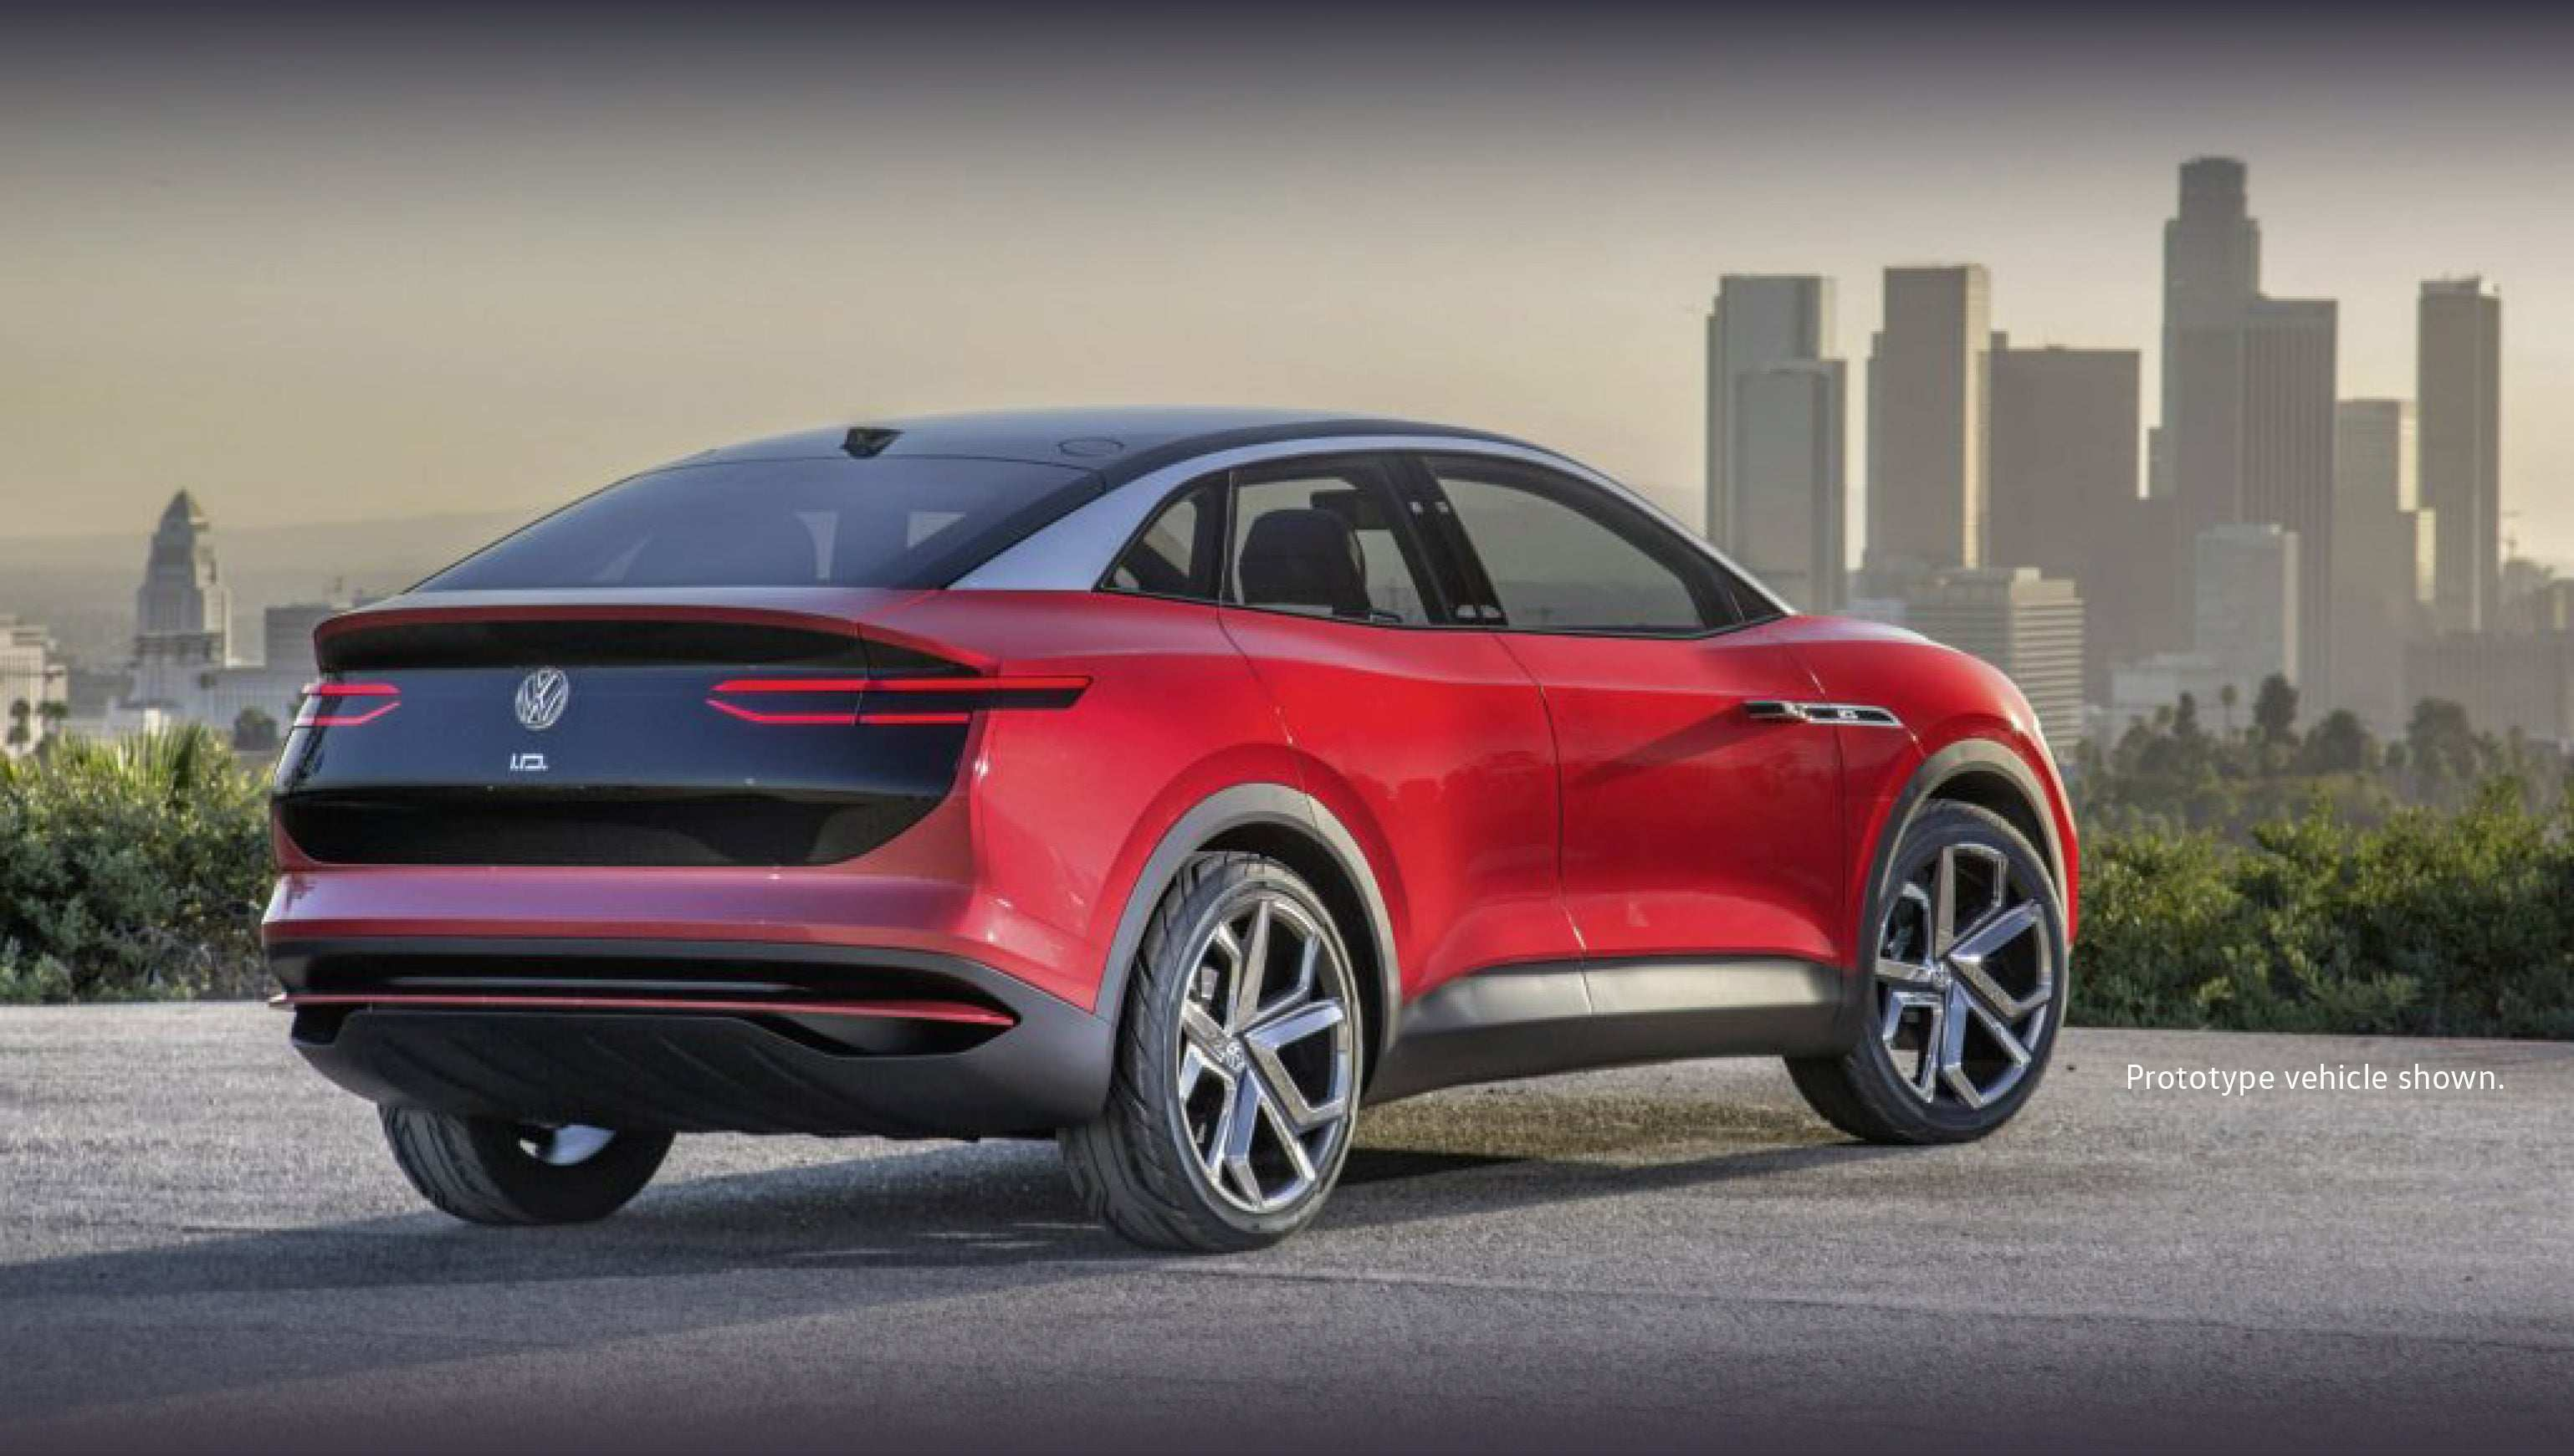 48 Best Volkswagen I D Crozz 2020 Review and Release date